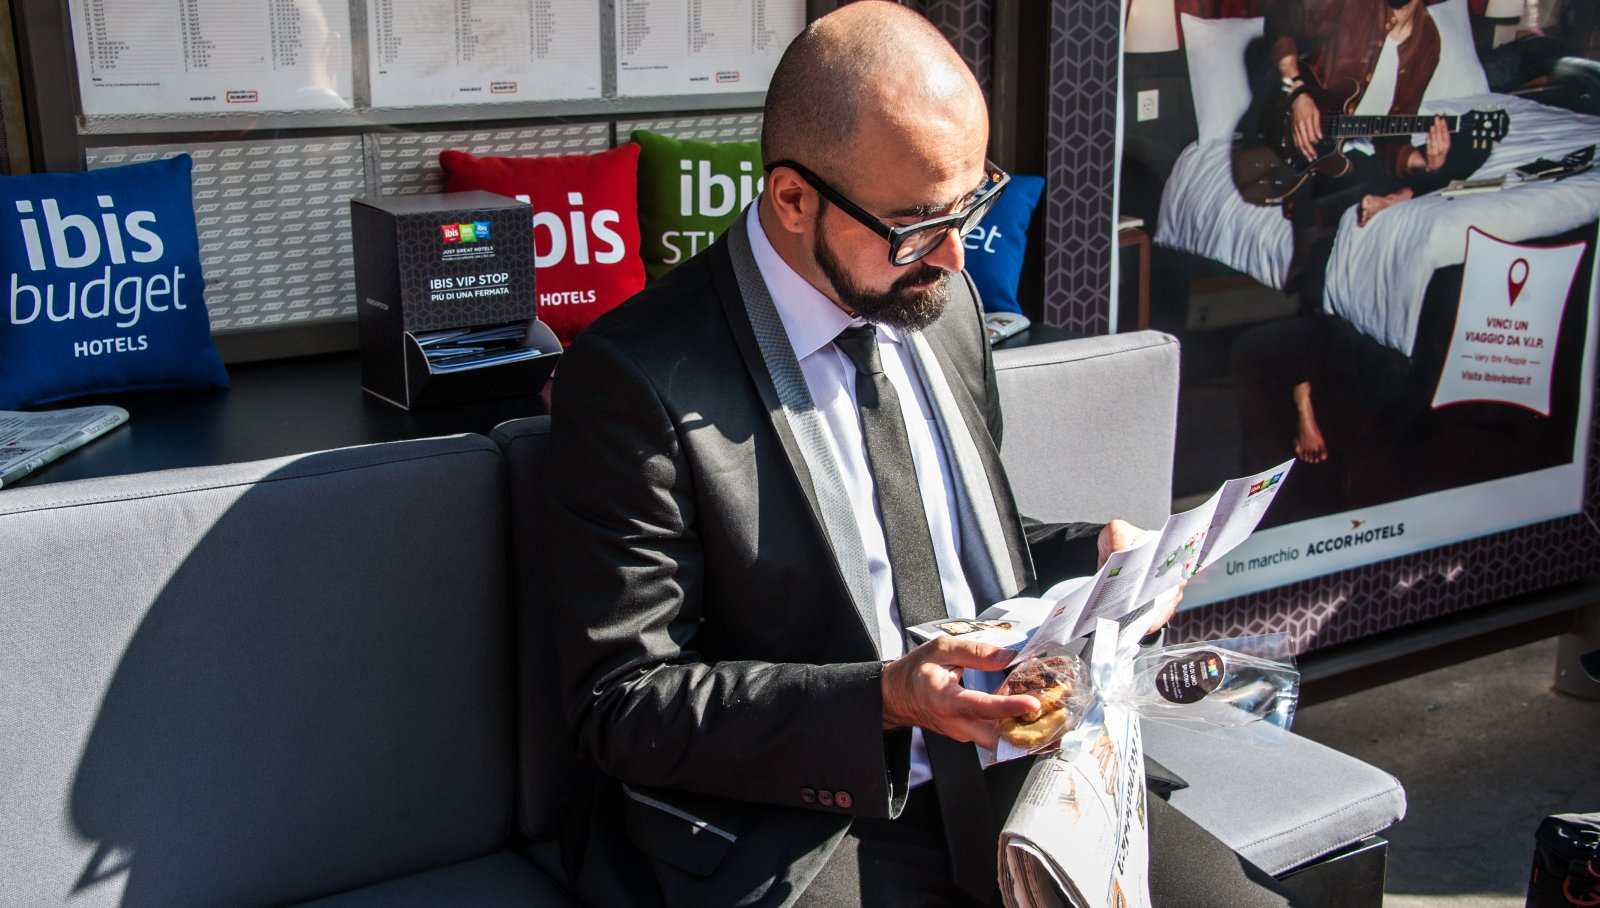 Ibis vip stop free wi-fi IGPDecaux Creative solutions